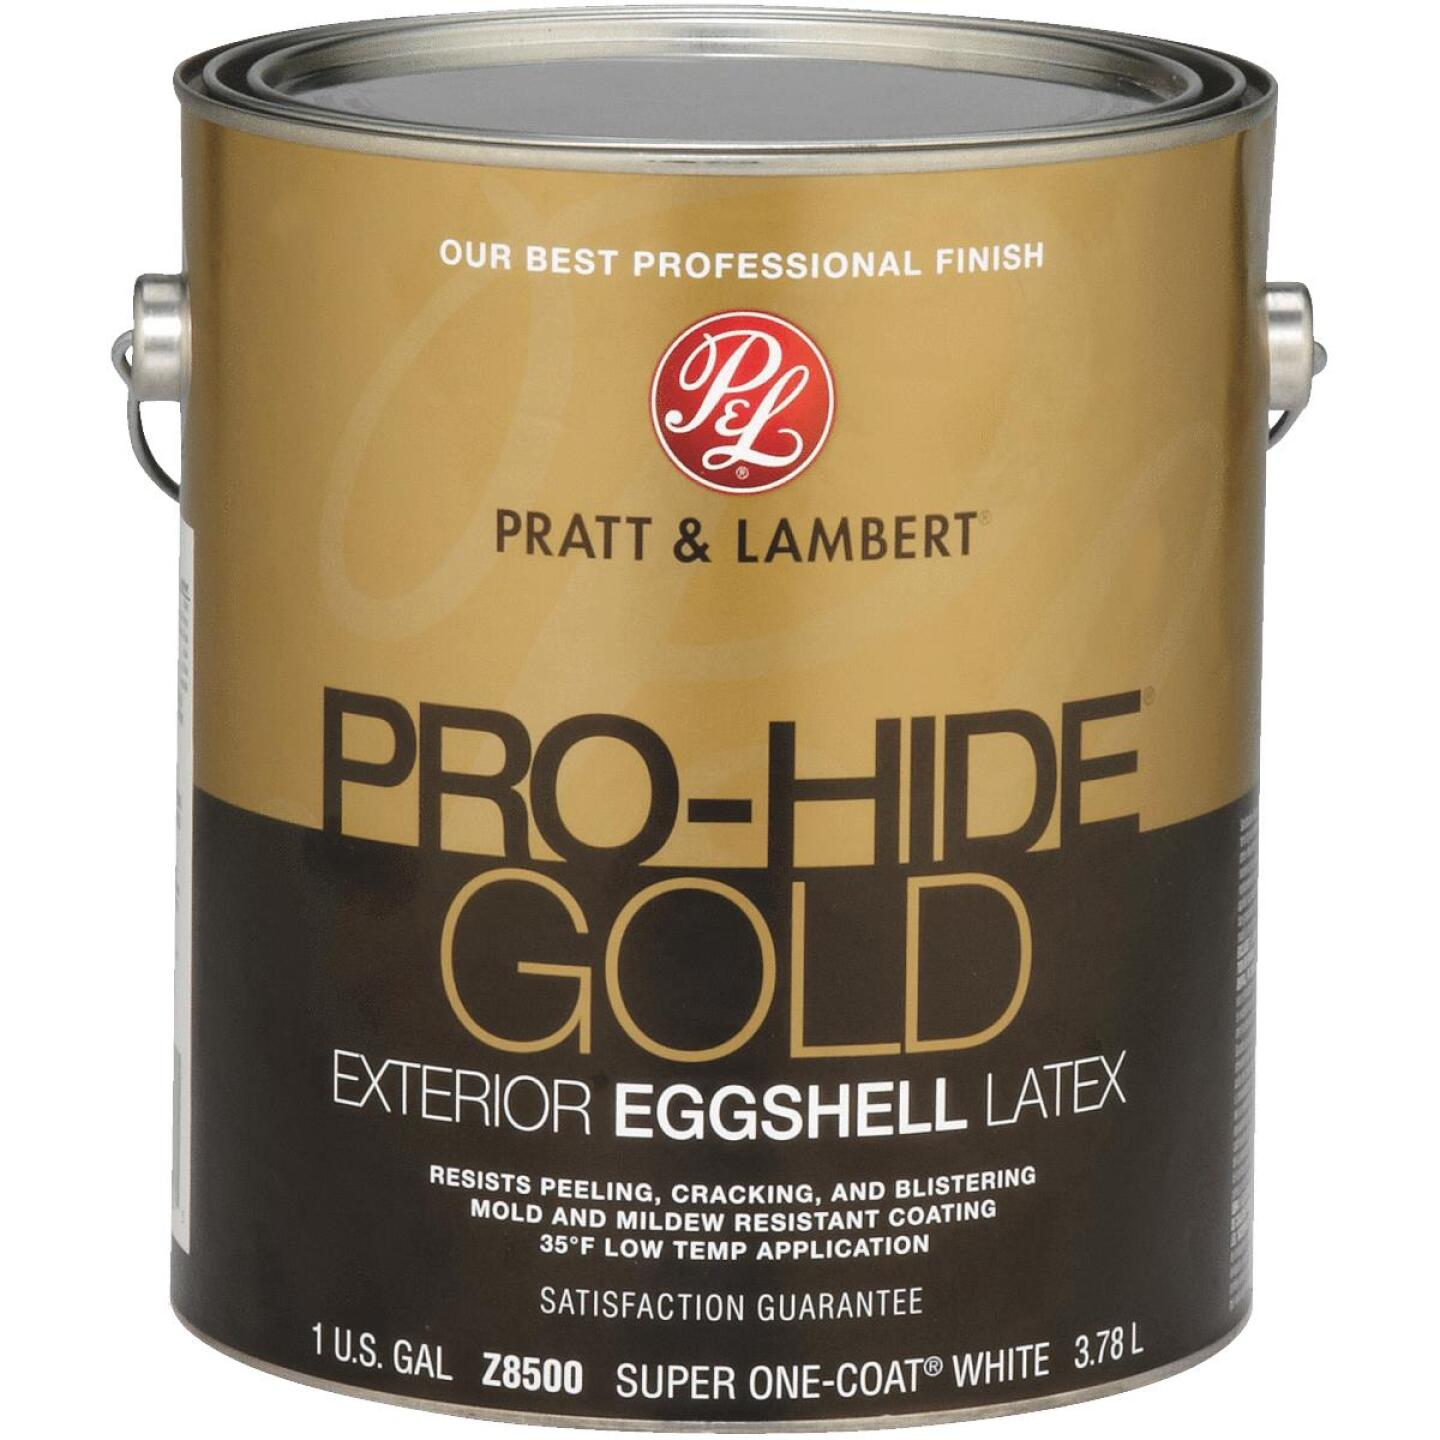 Pratt & Lambert Pro-Hide Gold Latex Eggshell Exterior House Paint, Super One-Coat White, 1 Gal. Image 1